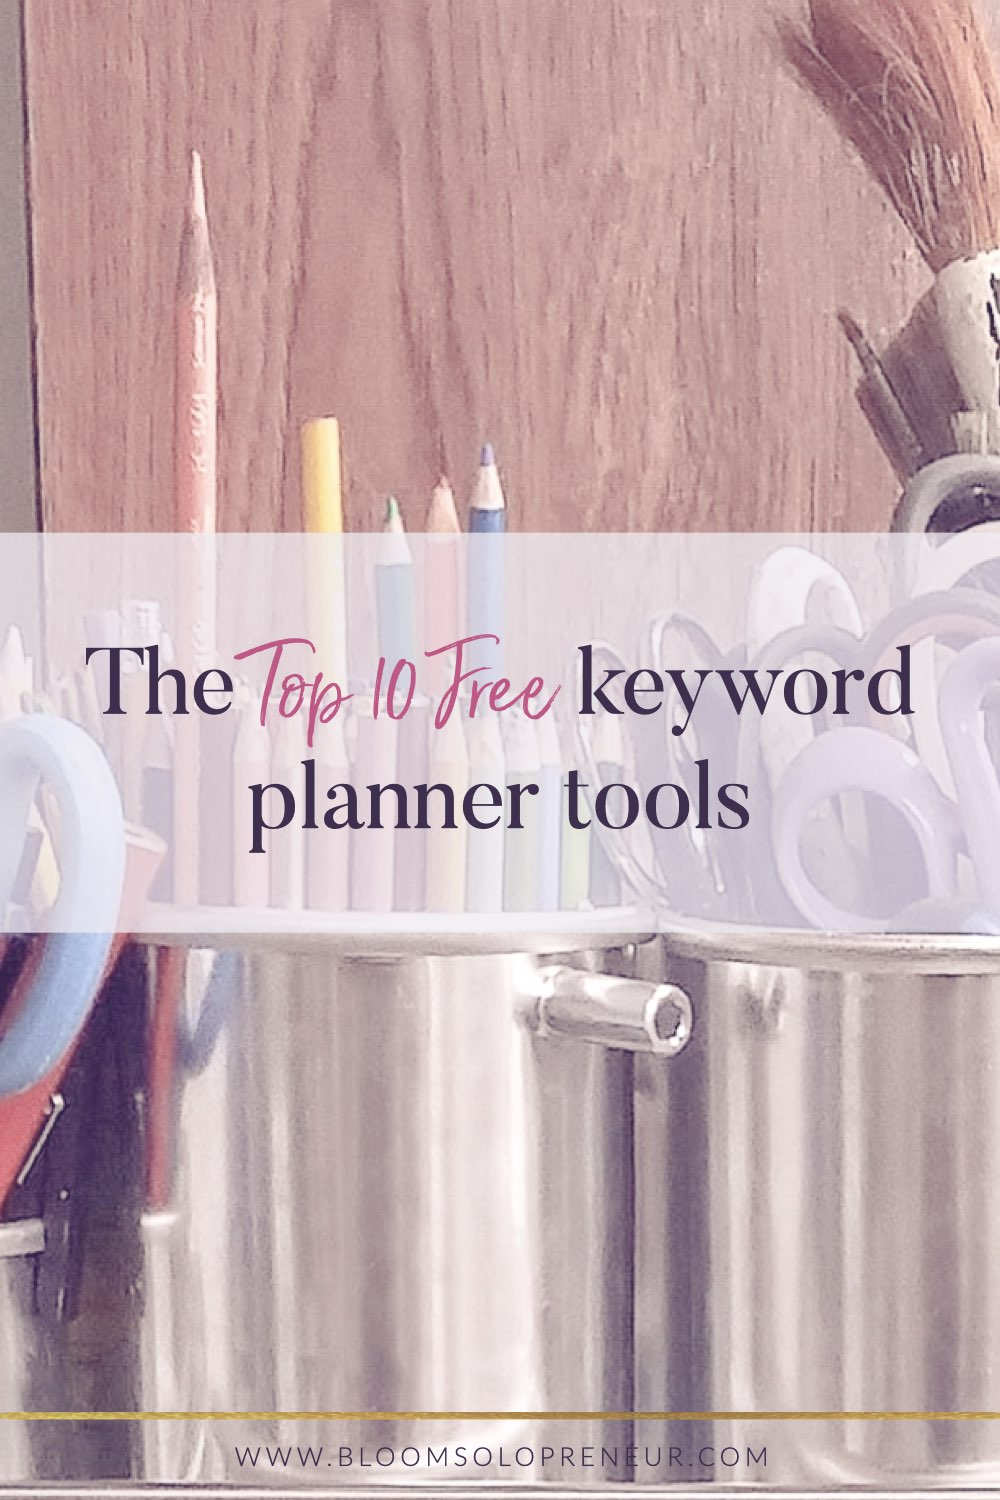 Use our suggestions of the the top 10 Free keyword planner tools to help improve your keyword planning Etsy SEO strategy and keyword research. In this post, I will tell you about the top 10 free keyword planner tools that I have discovered.If you are unsure of what SEO and keywords mean. Researching the keywords you use is essential if you want to take advantage of all the people already using Etsy searching for products. #bloomsoloprenuer